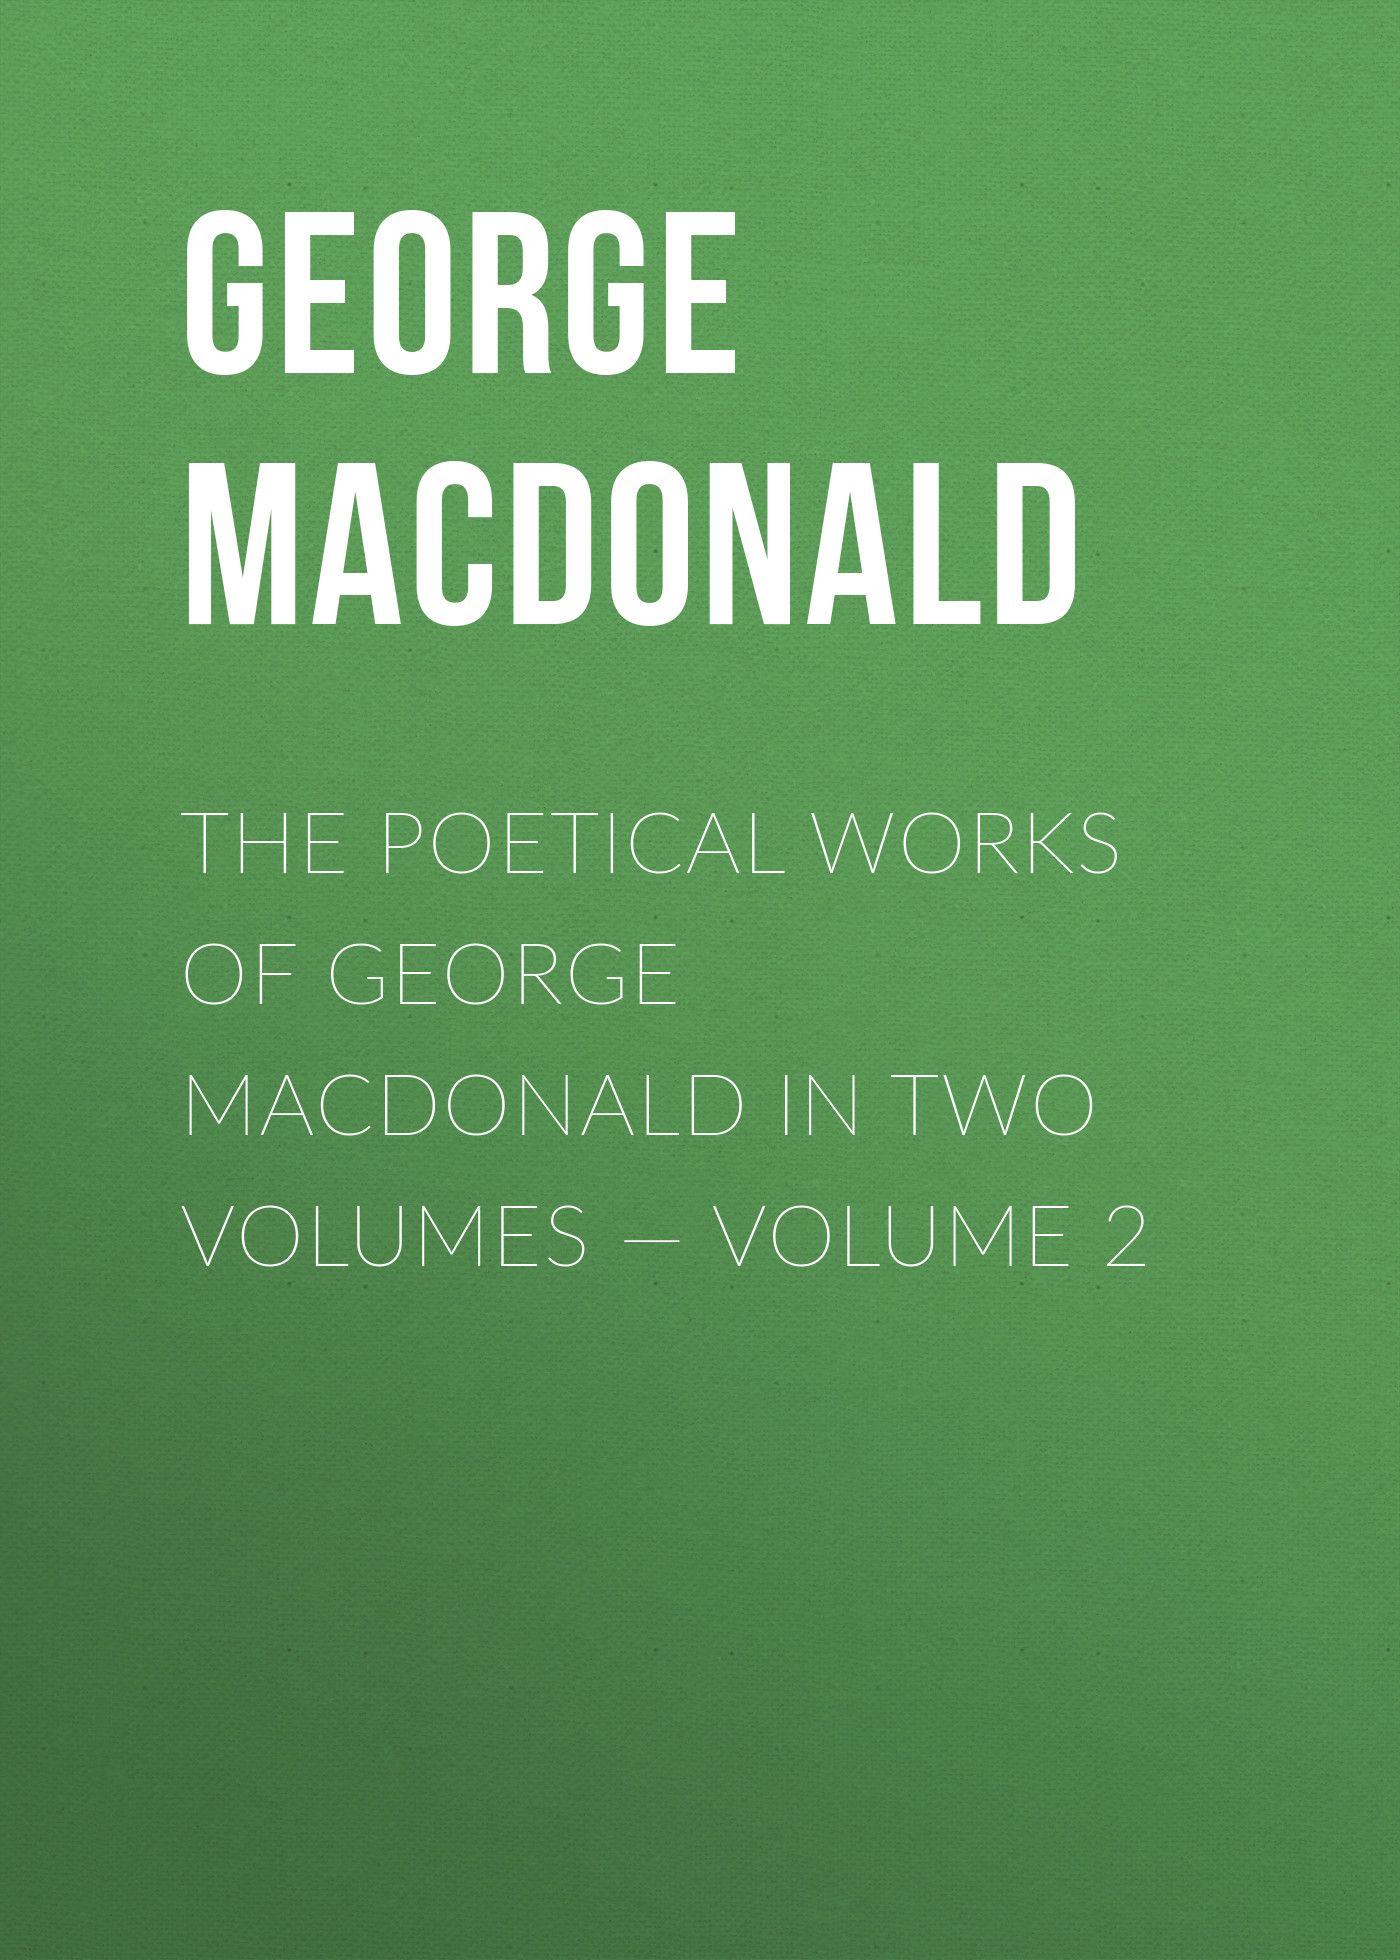 George MacDonald The poetical works of George MacDonald in two volumes — Volume 2 george macdonald weighed and wanting